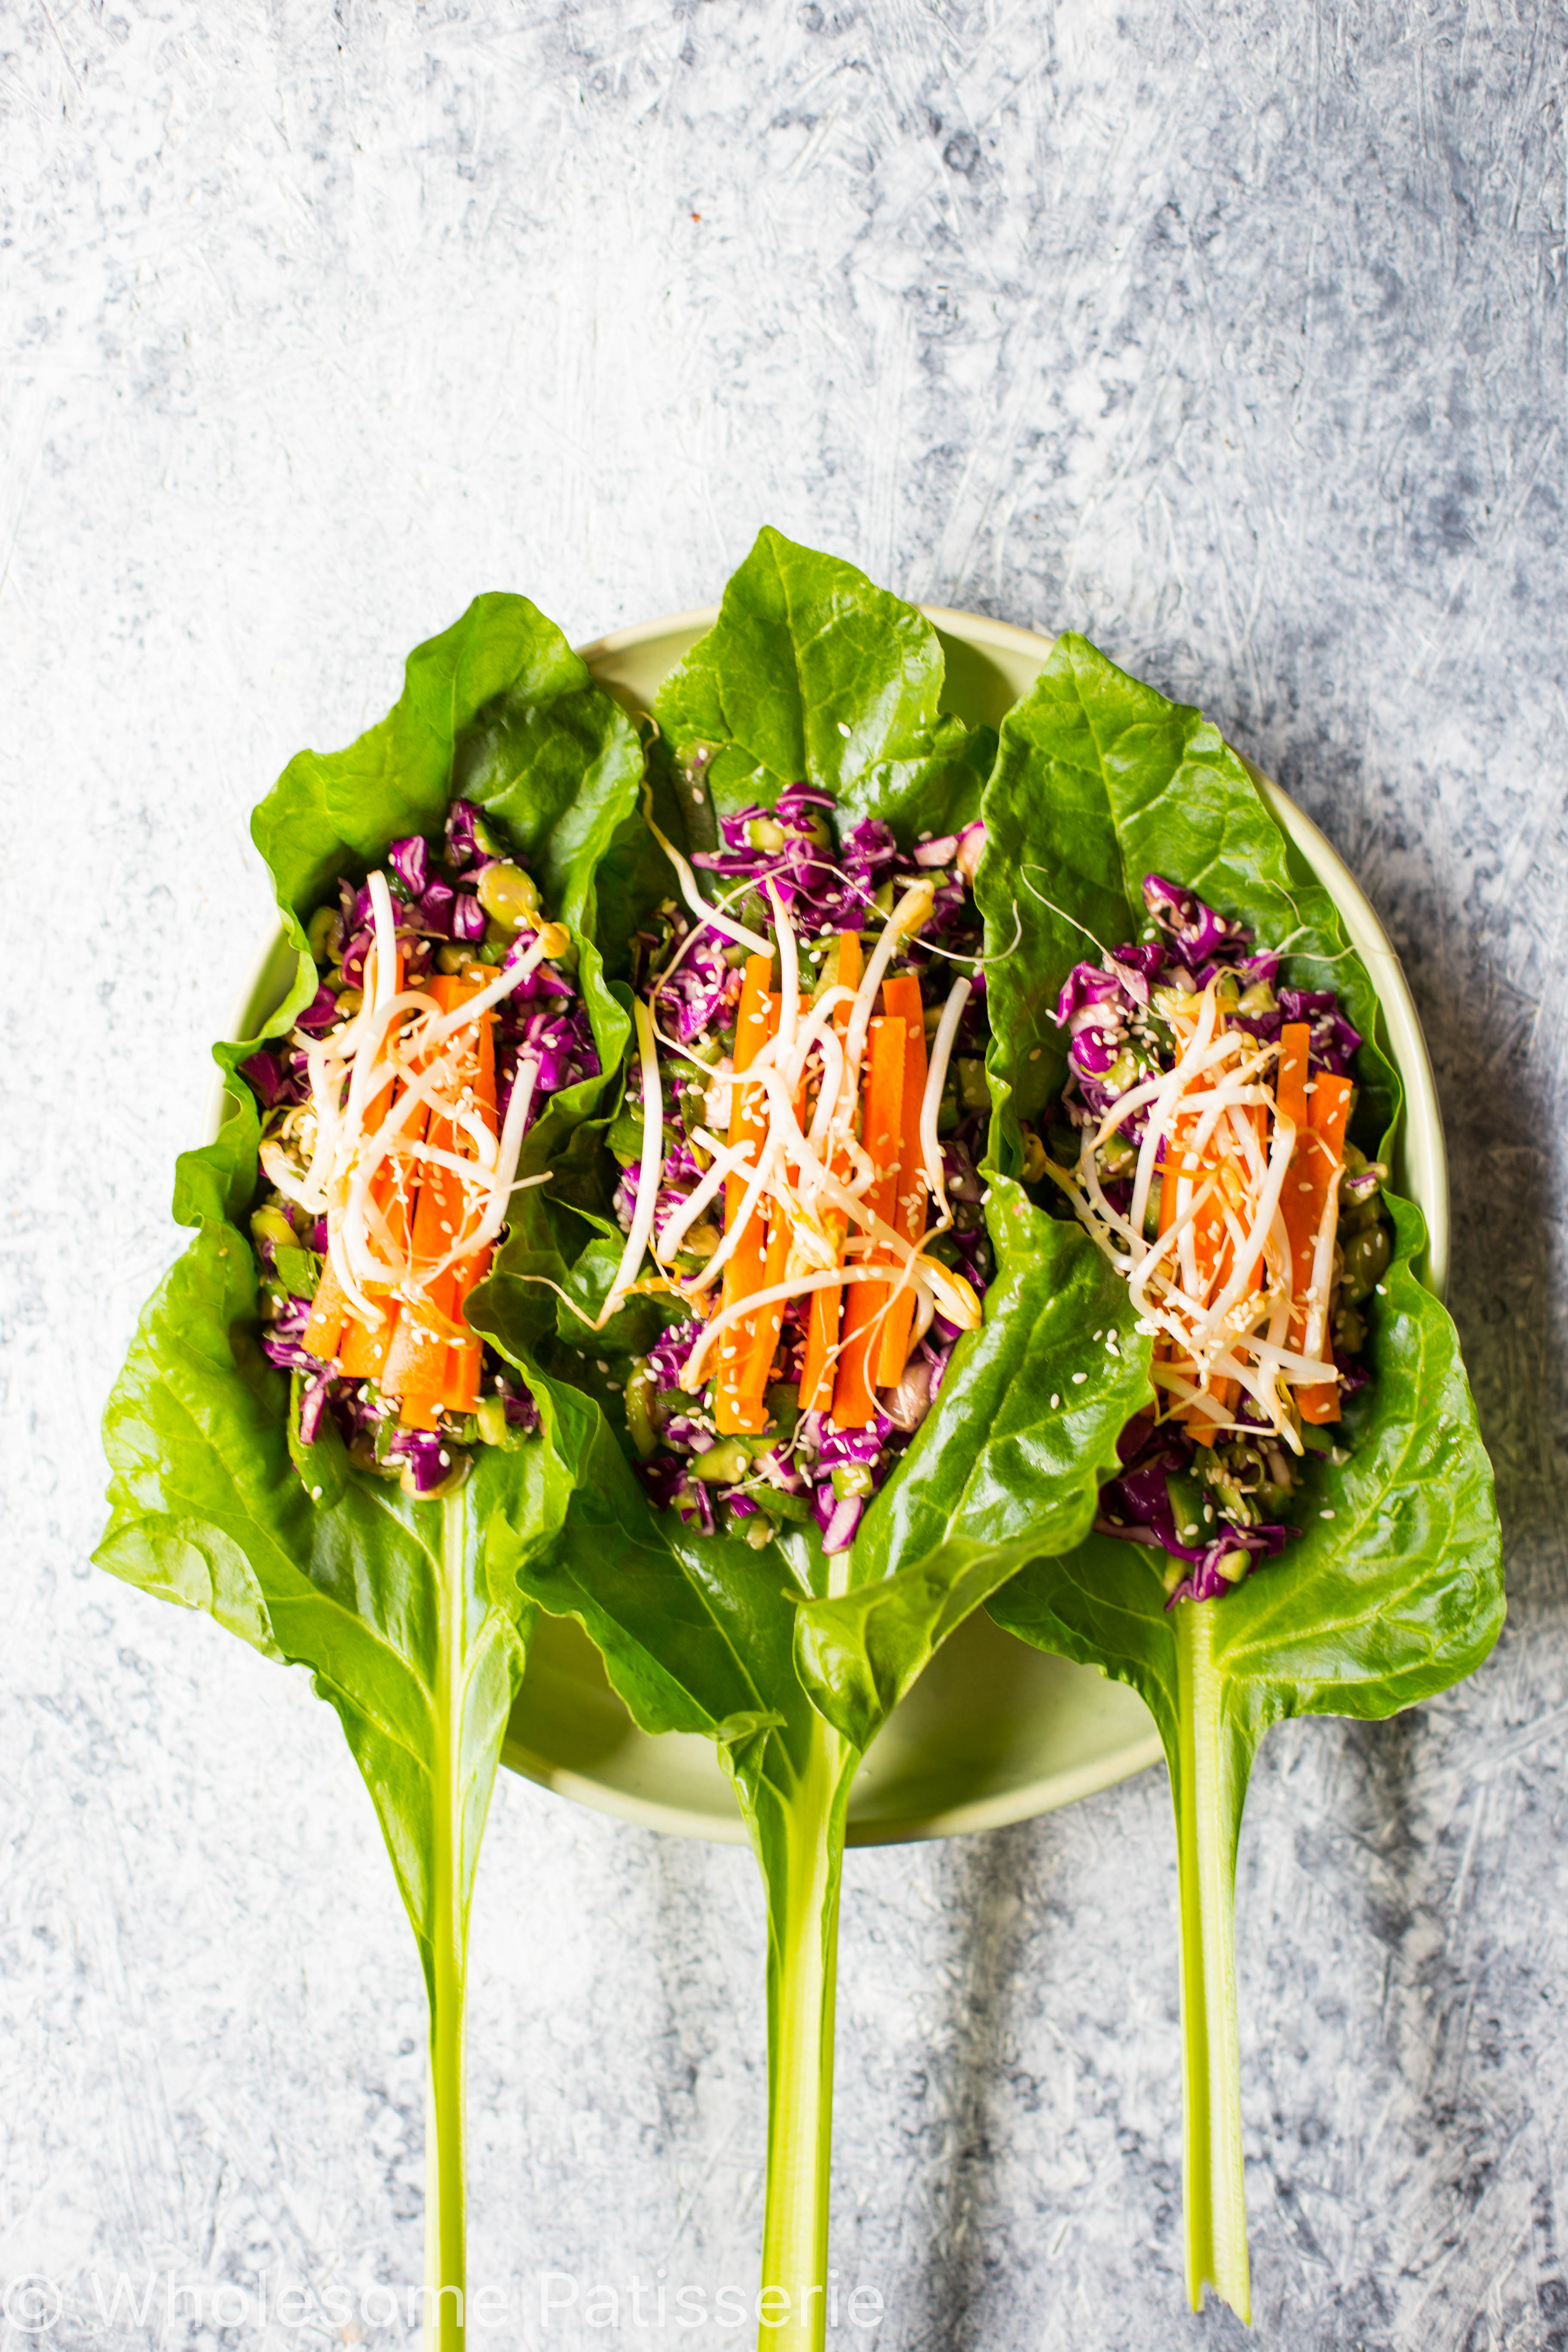 vegan-asian-lettuce-wraps-spinach-gluten-free-amazing-easy-delicious